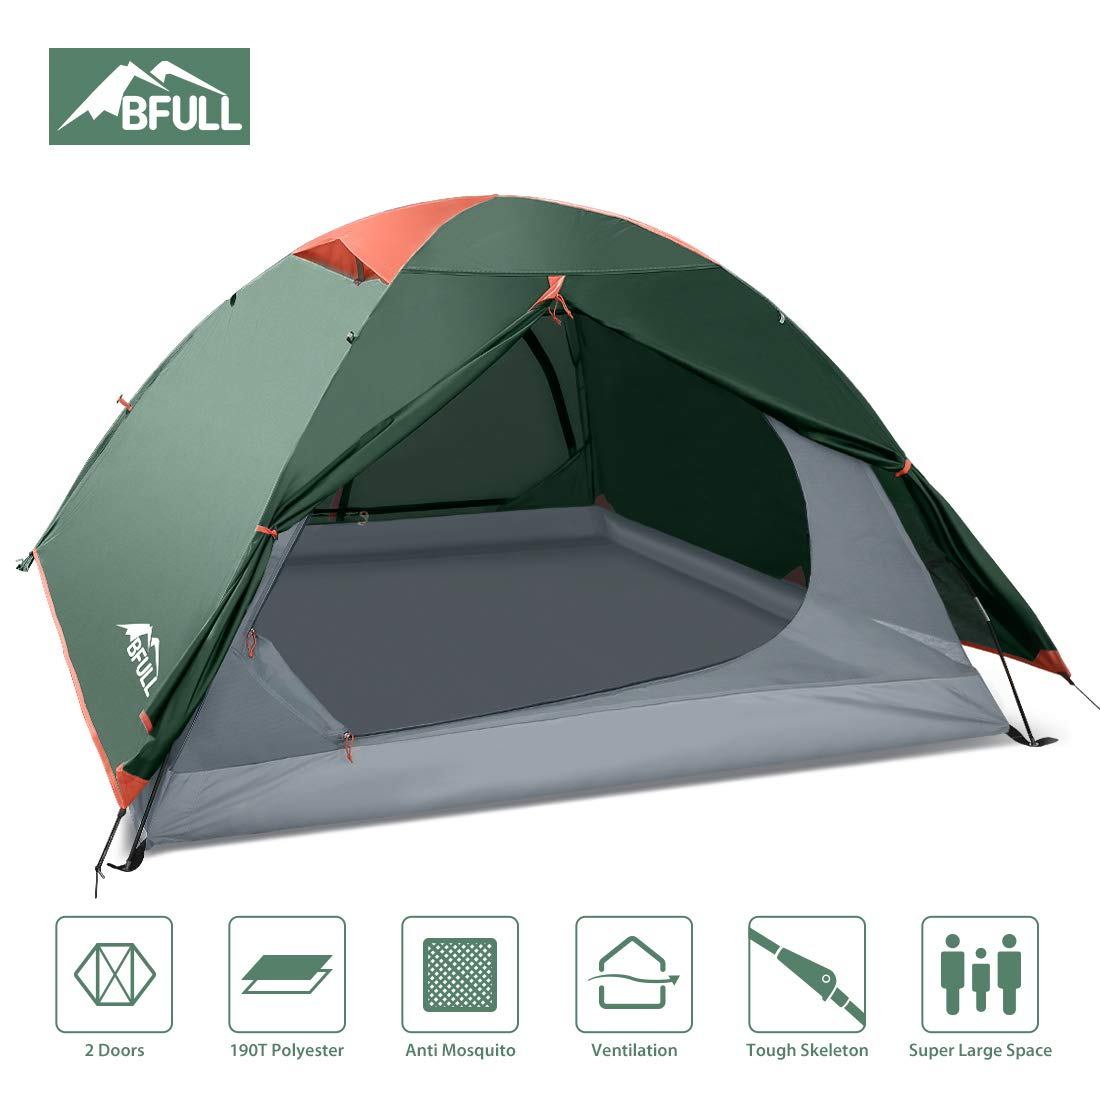 BFULL Camping Tents 2 3 Person Lightweight Backpacking Tents